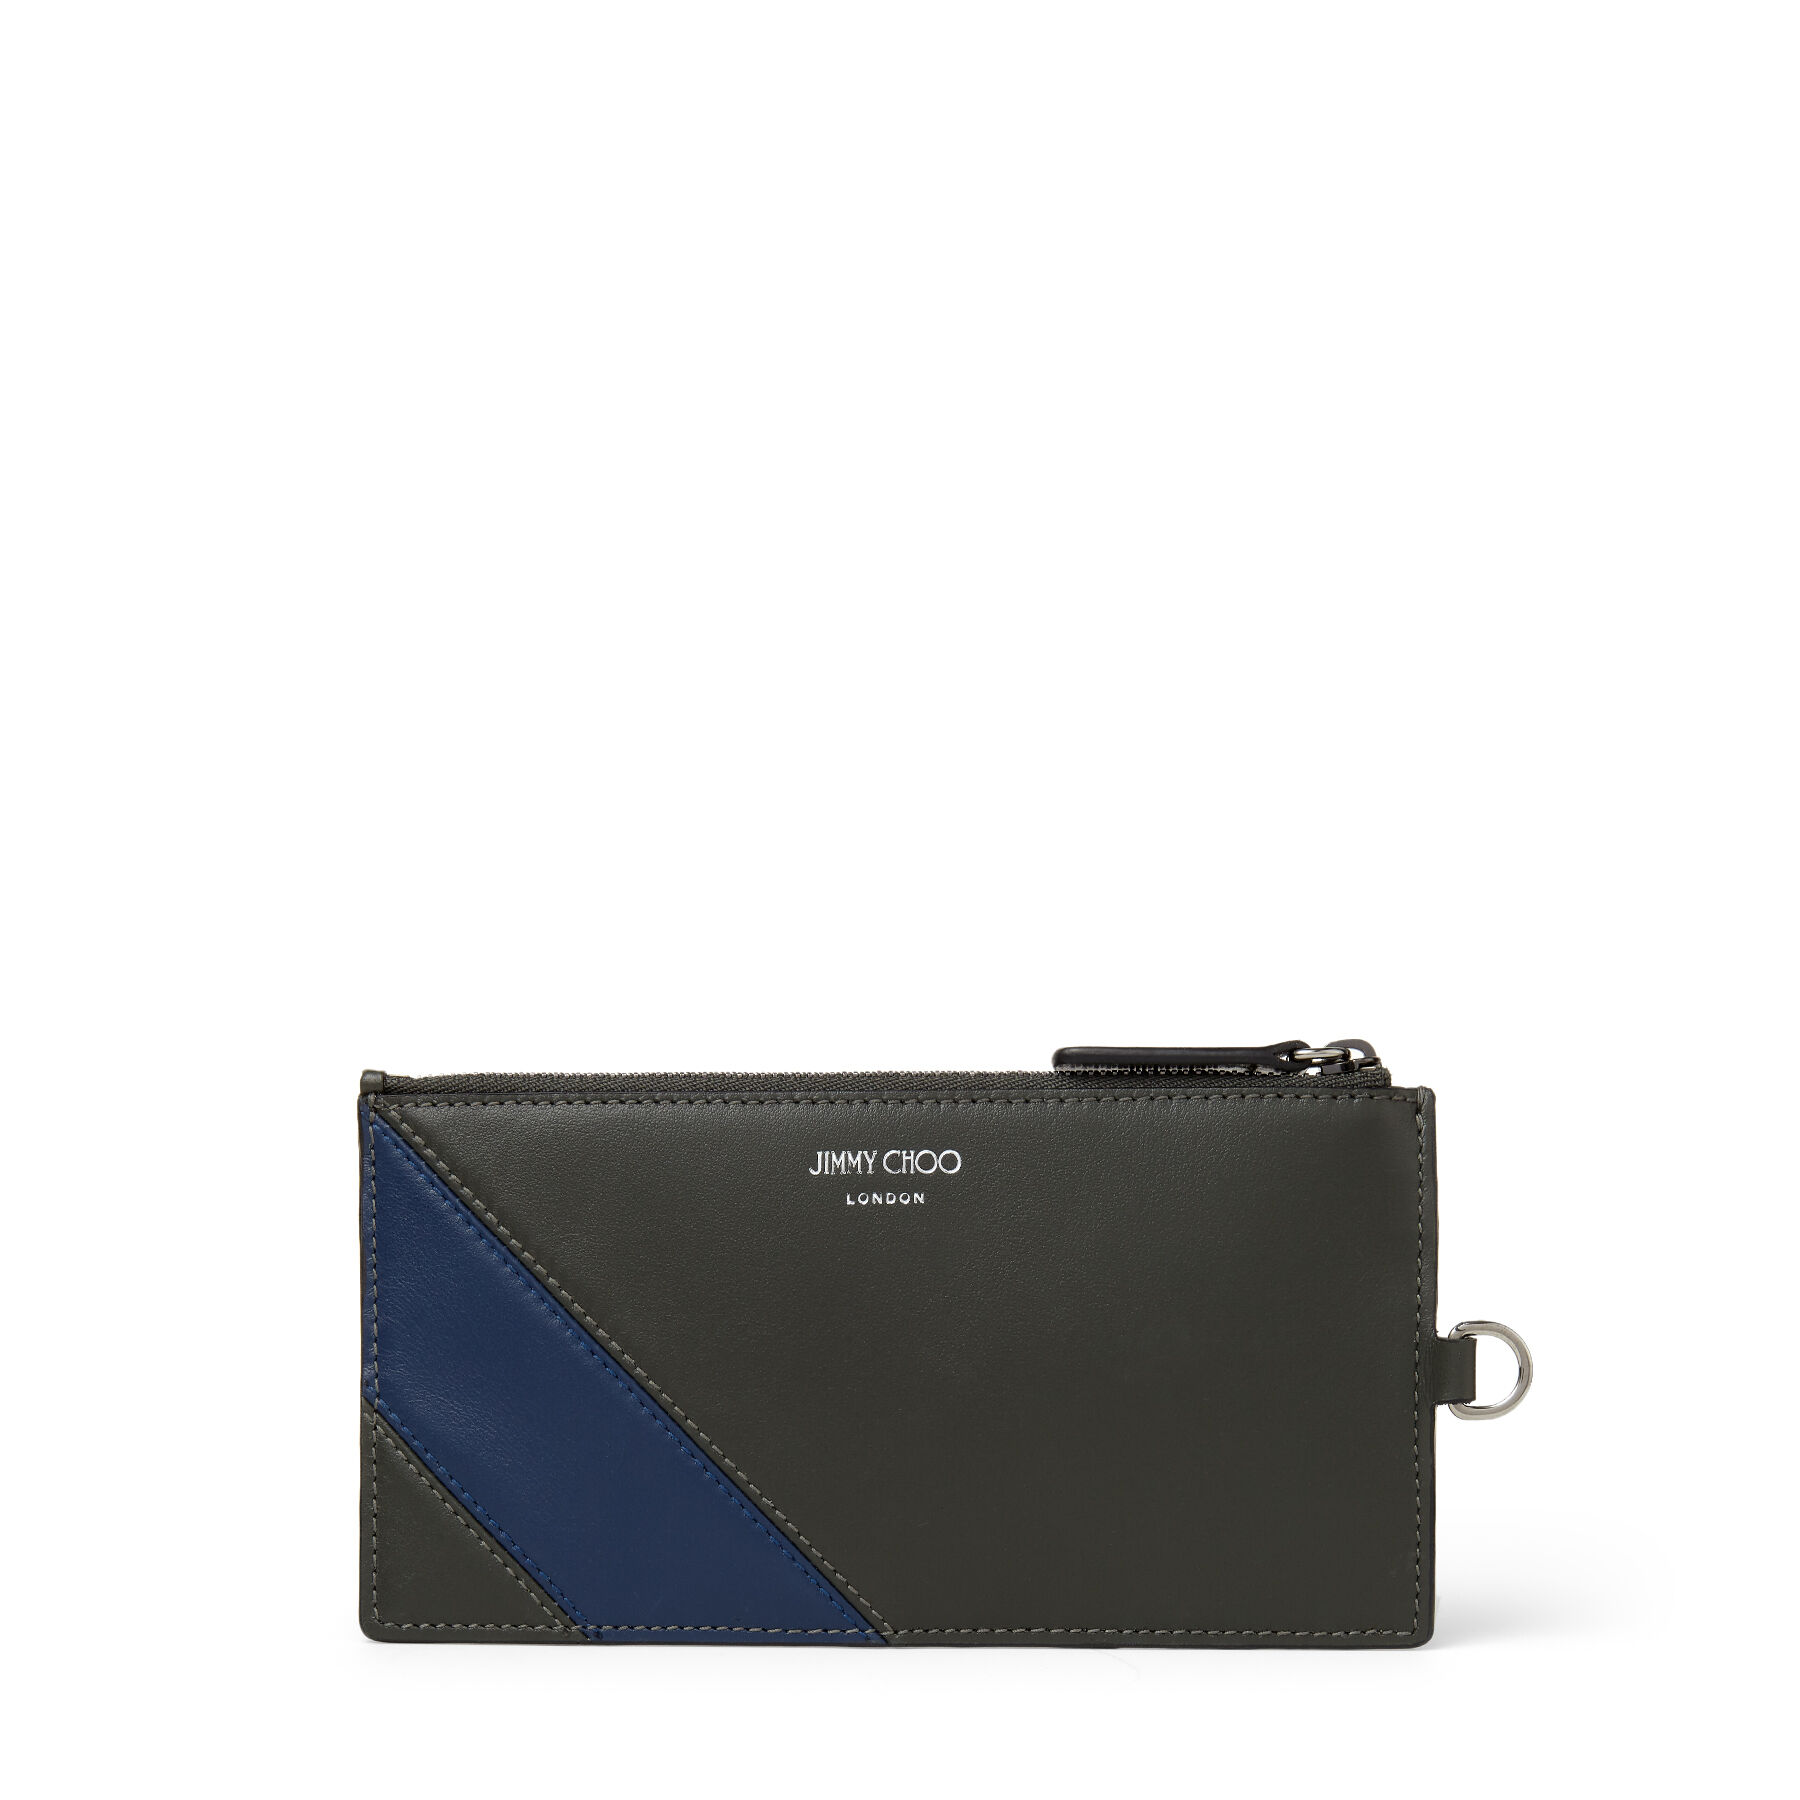 In sea-green croc-embossed leather with an asymmetric denim striped panel, KRESS is a refined accessory with a contemporary touch. It\\\'s crafted in Italy to a slender shape with card holders and a zipped coin pocket to organise essentials, and finished with subtle Jimmy Choo branding.